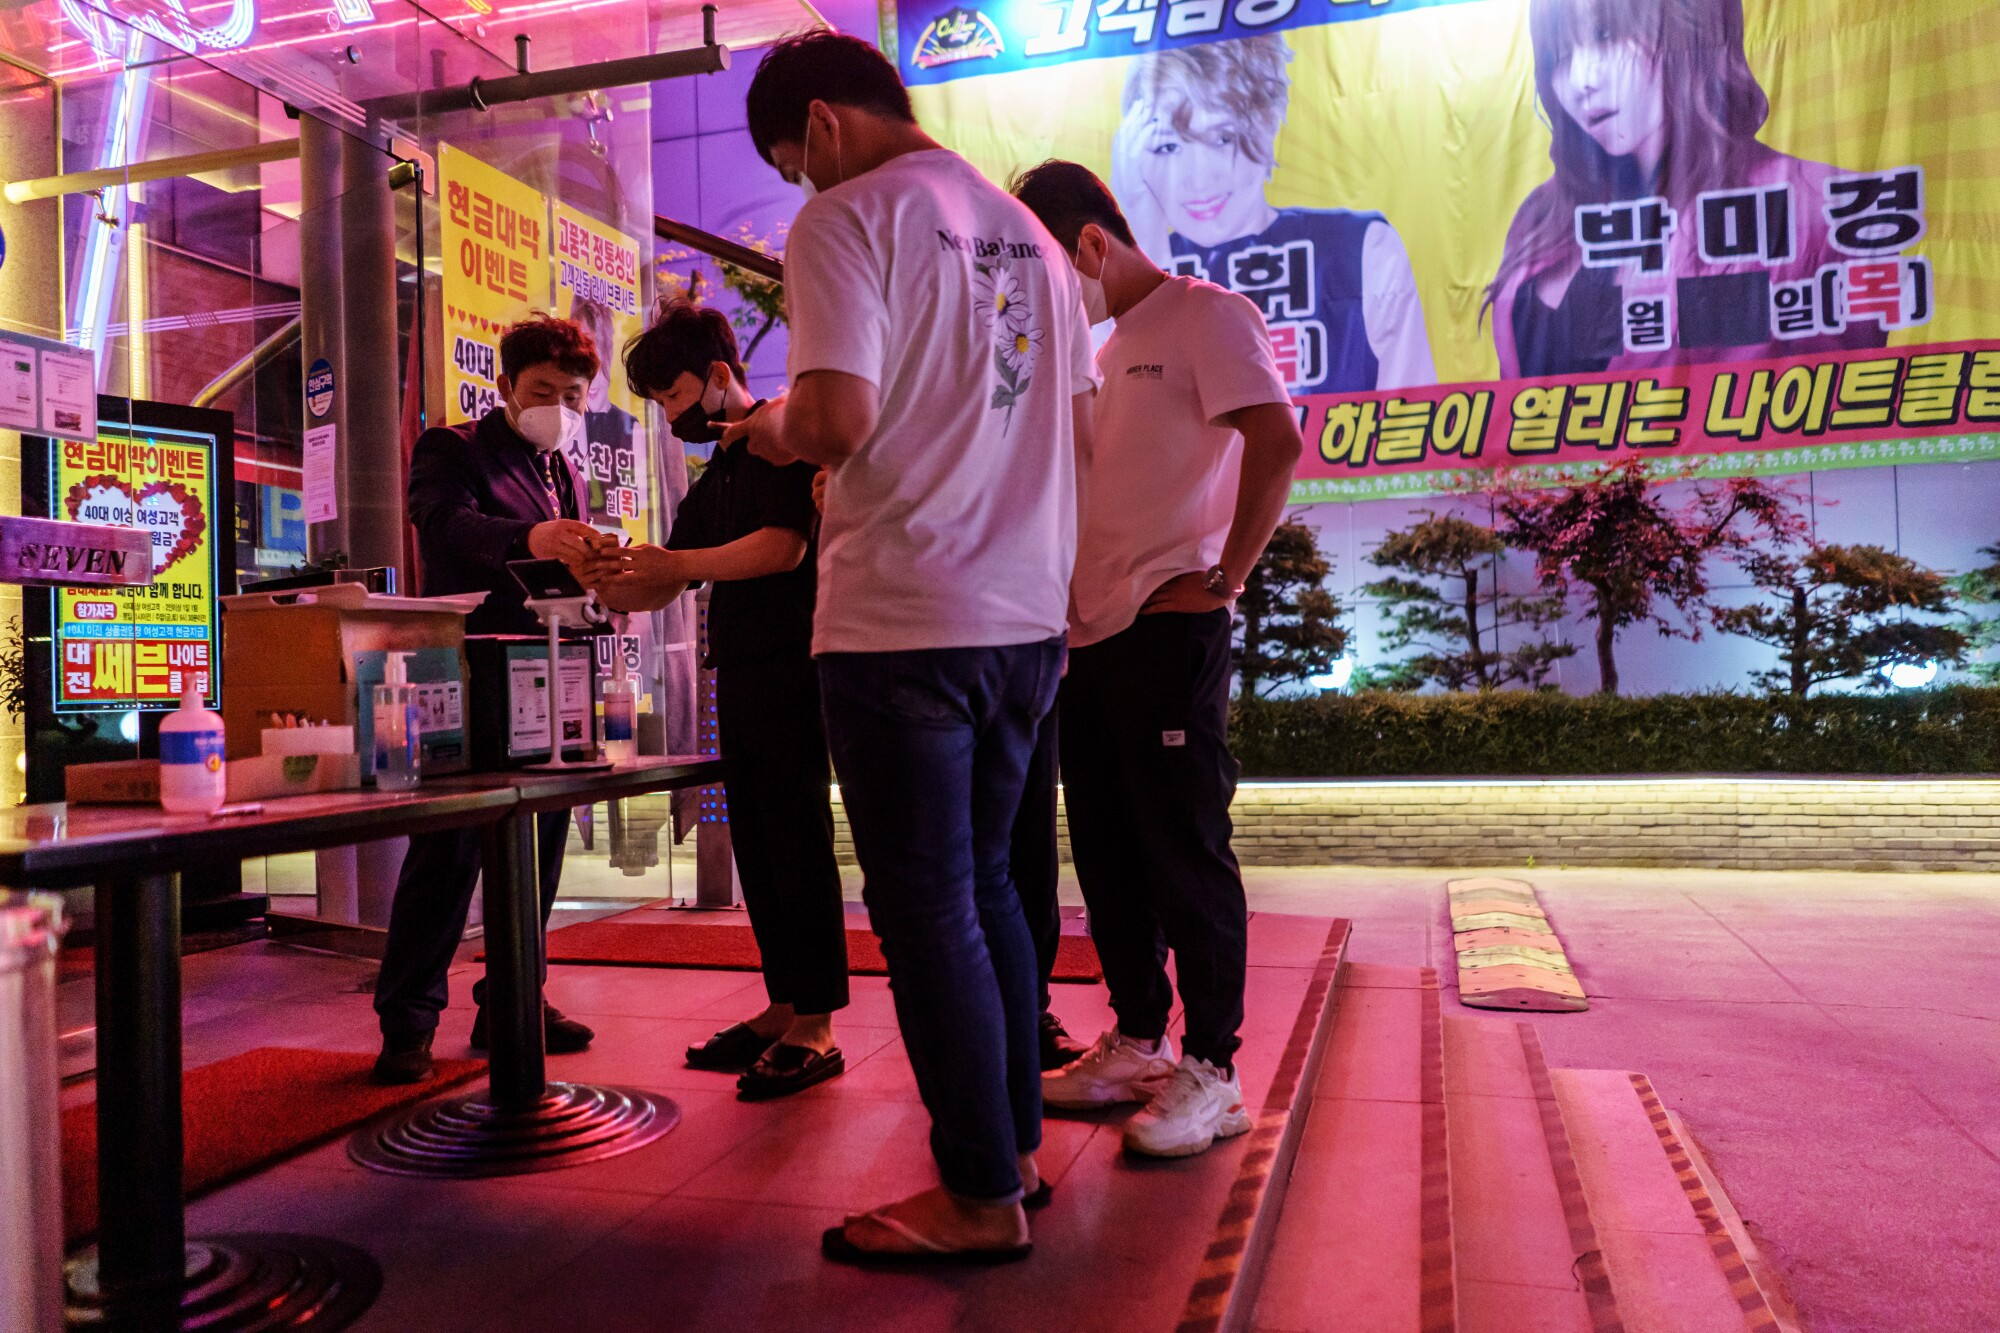 Bouncers ask patrons to scan QR codes on their smartphones at a South Korean nightclub.